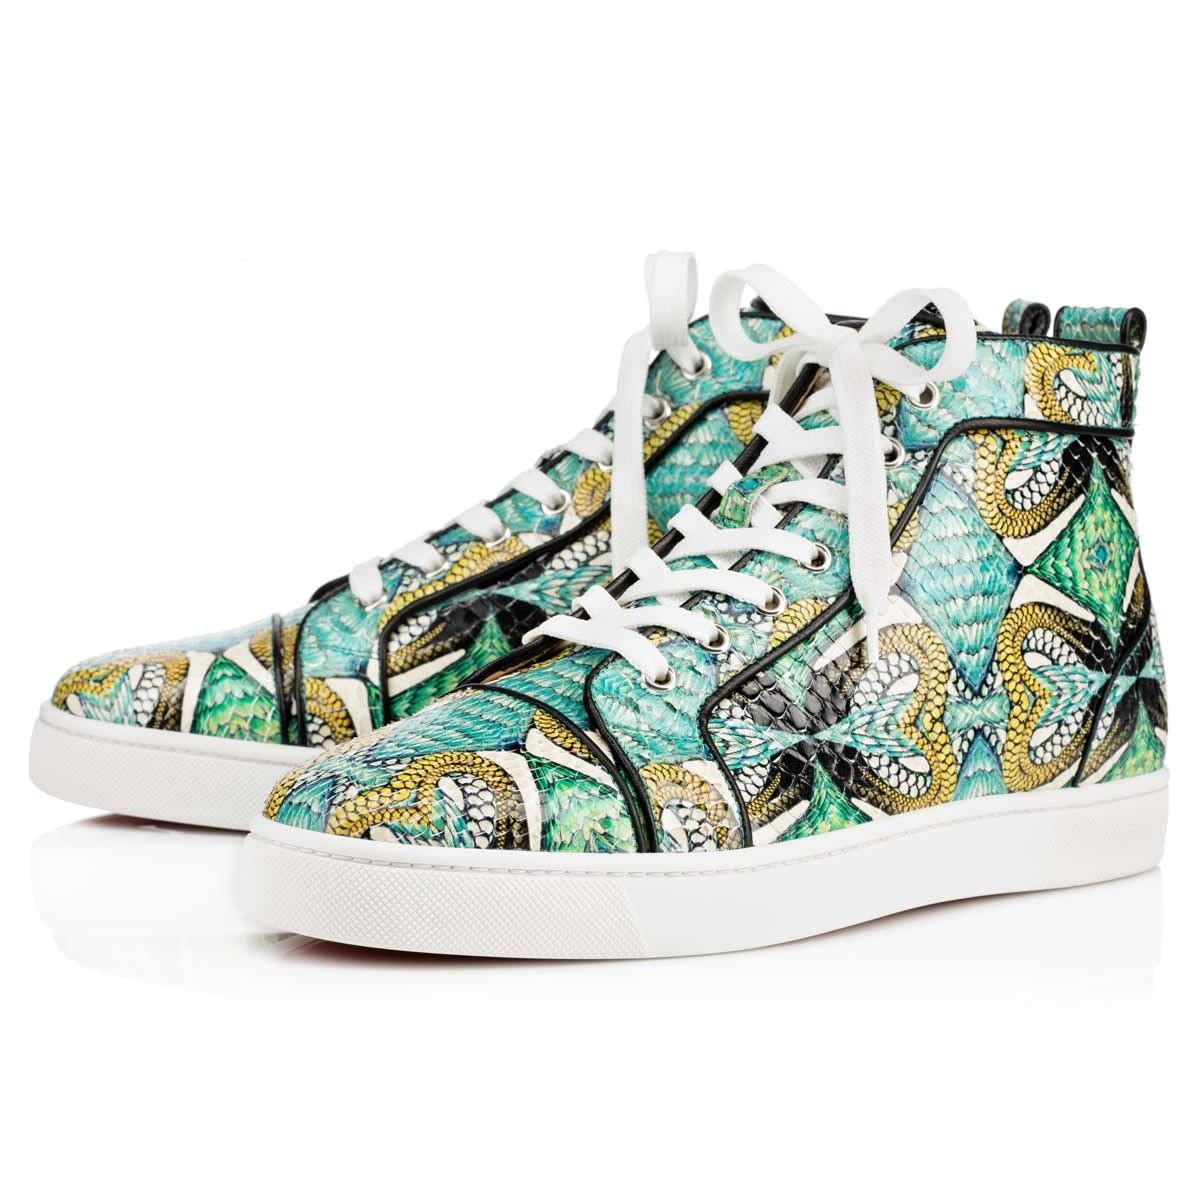 07618d65d7b0 Tapestry Rantus Orlato Shoes by Christian Louboutin in 2019 ...